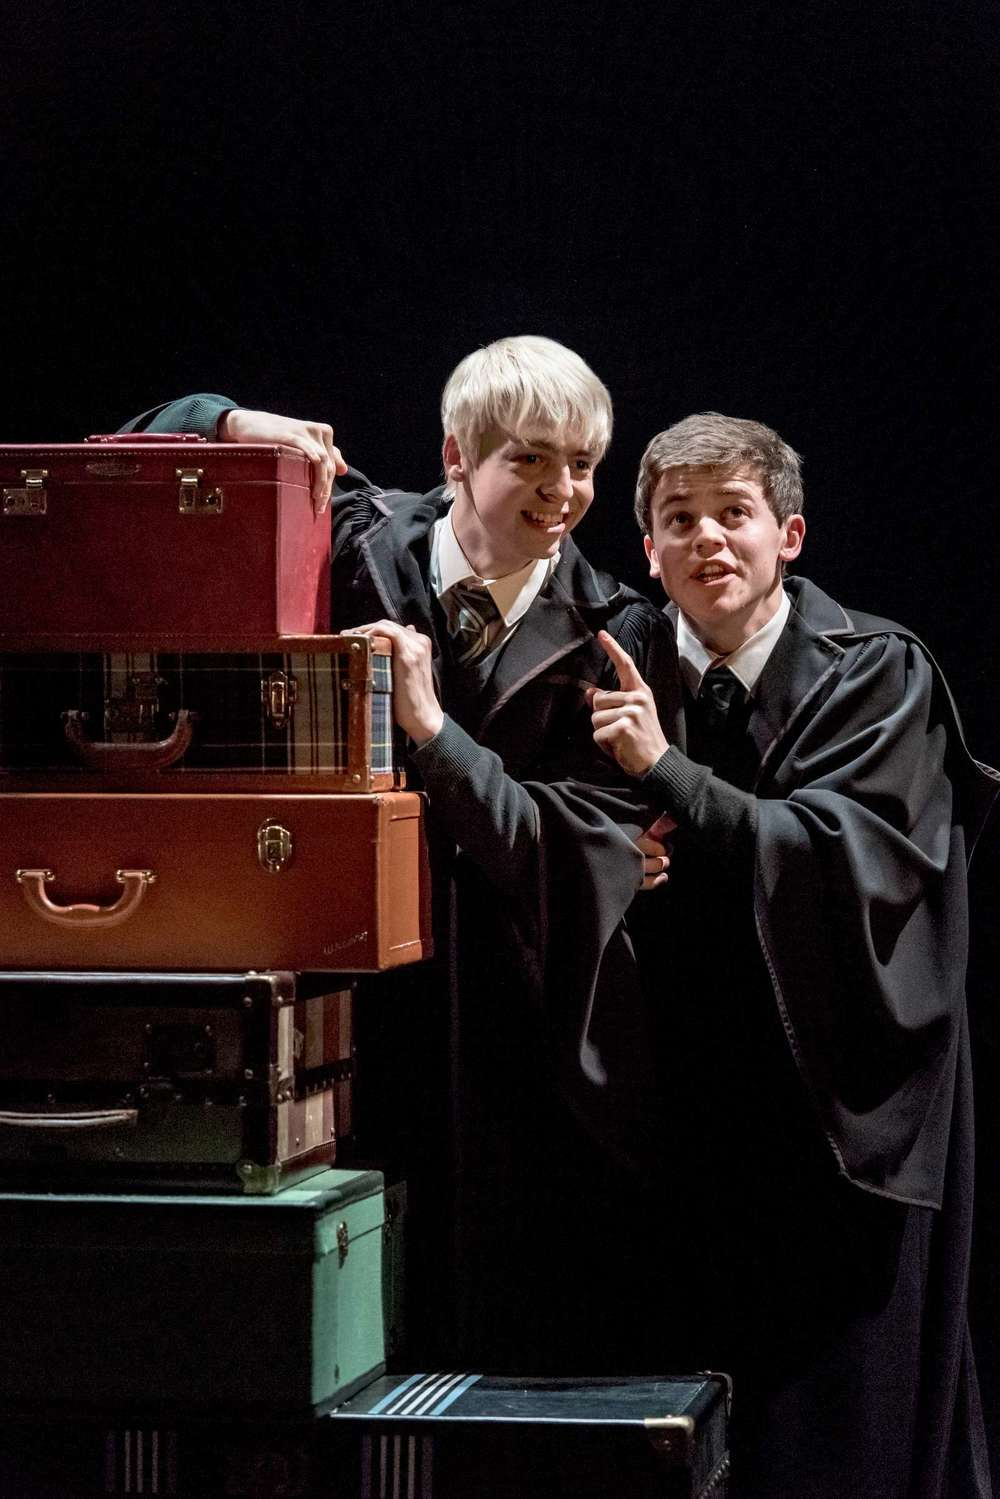 Production photo. L-R Anthony Boyle (Scorpius Malfoy) and Sam Clemmett (Albus Potter); Photo by Manuel Harlan - http://www.harrypottertheplay.com/